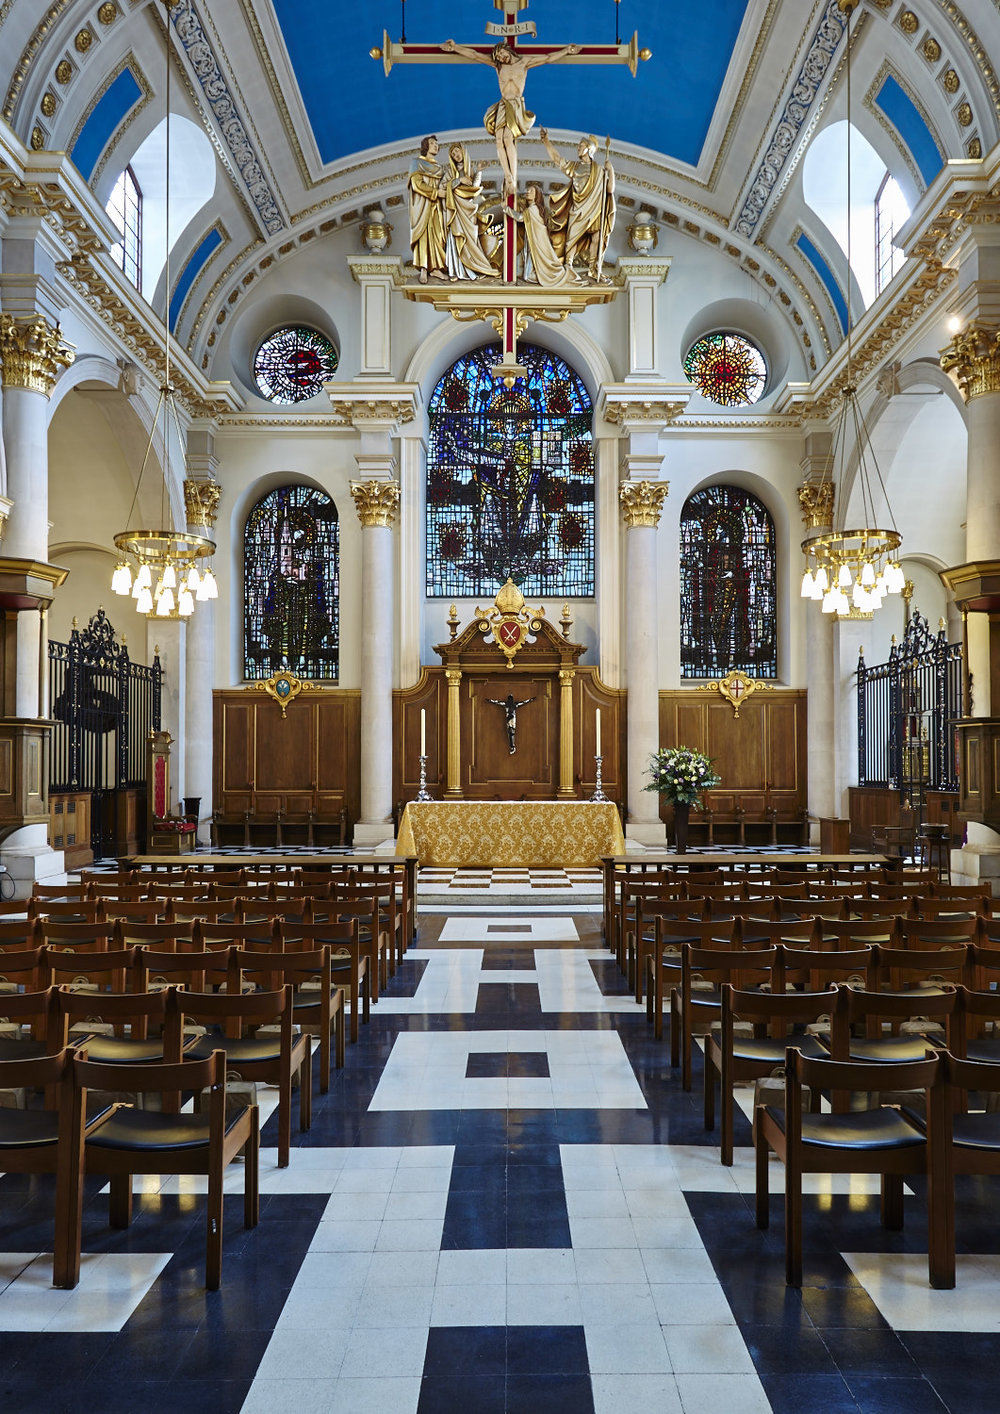 St Mary-le-Bow, the Nave